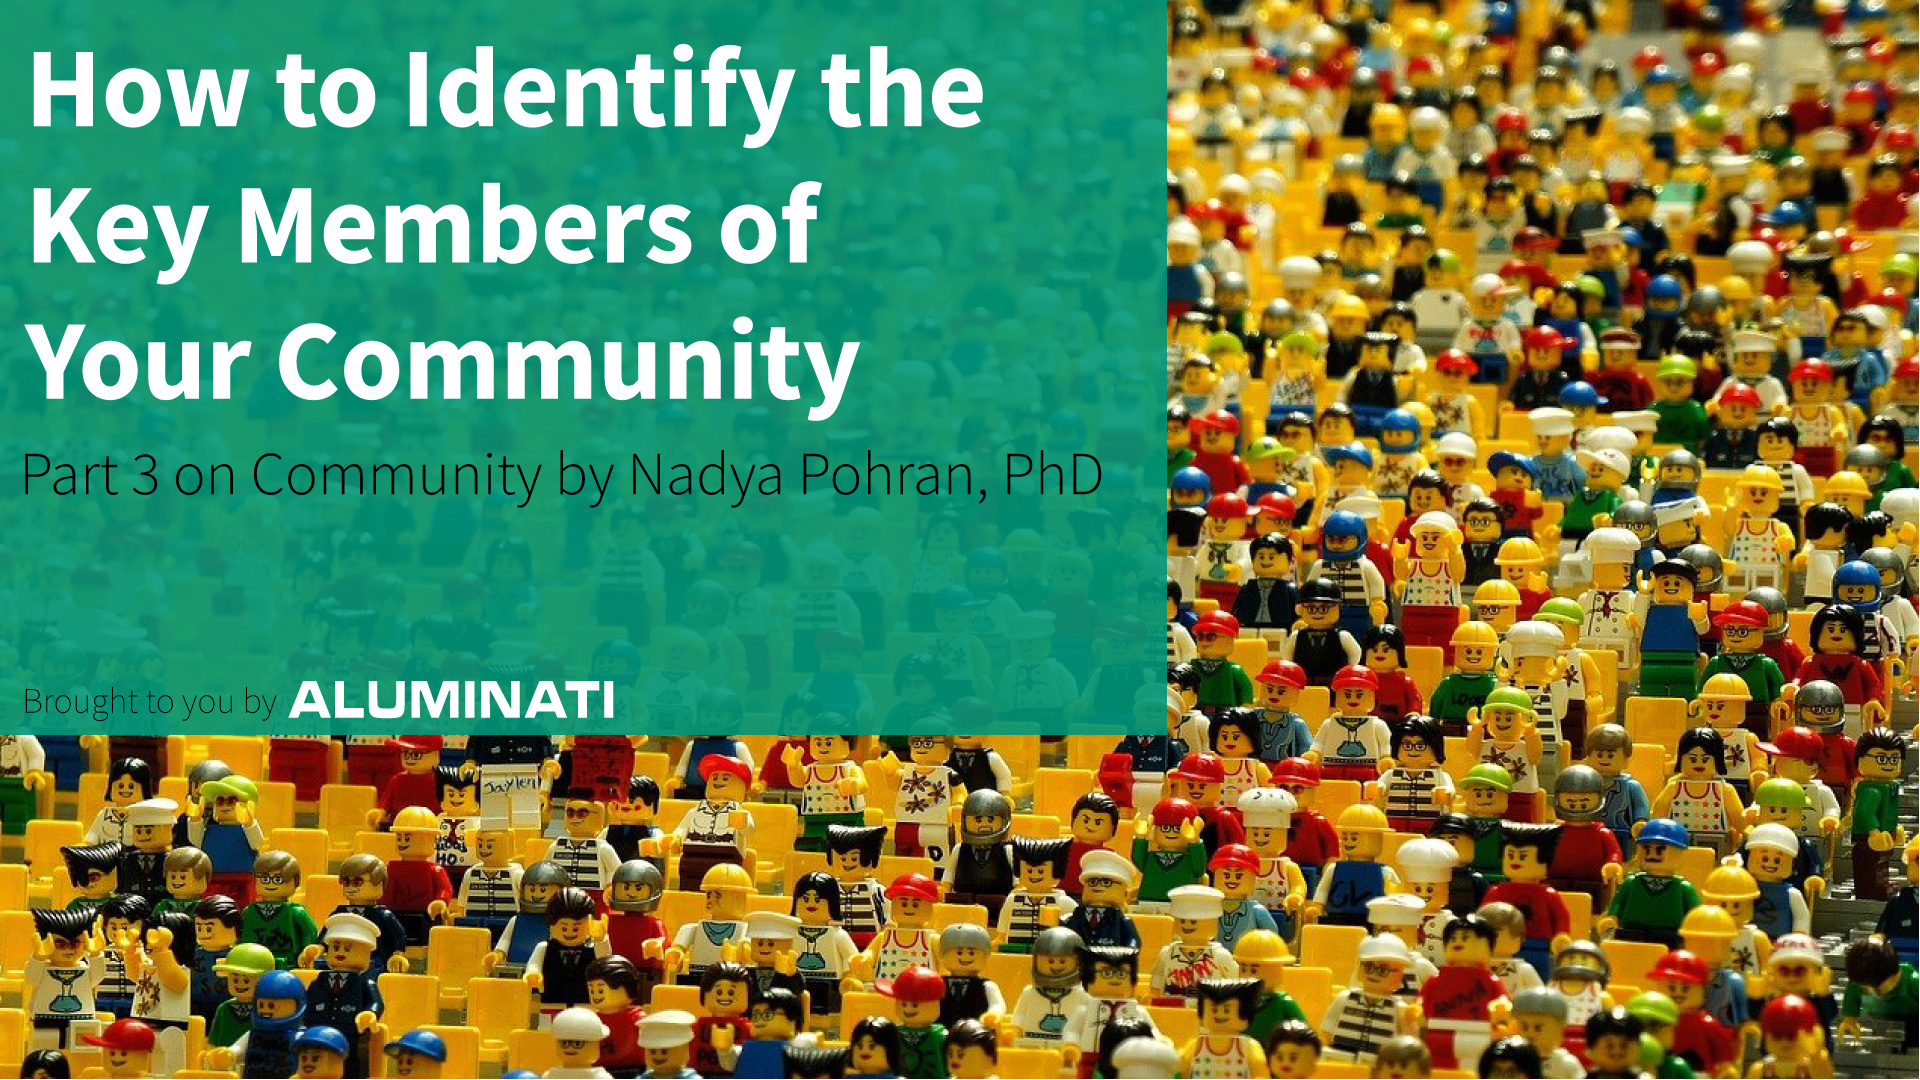 How to Identify the Key Members of Your Community